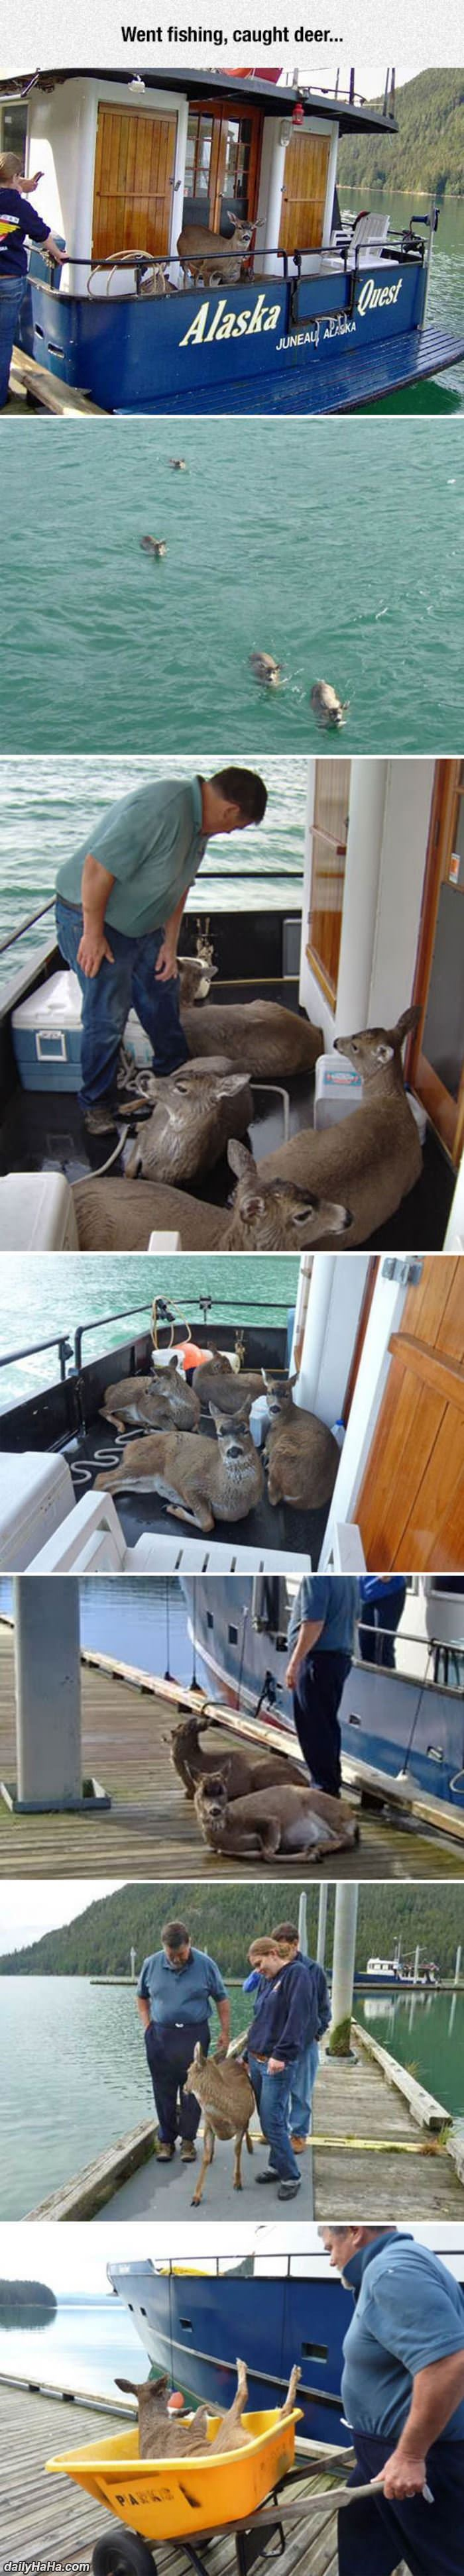 went fishing caught deer funny picture